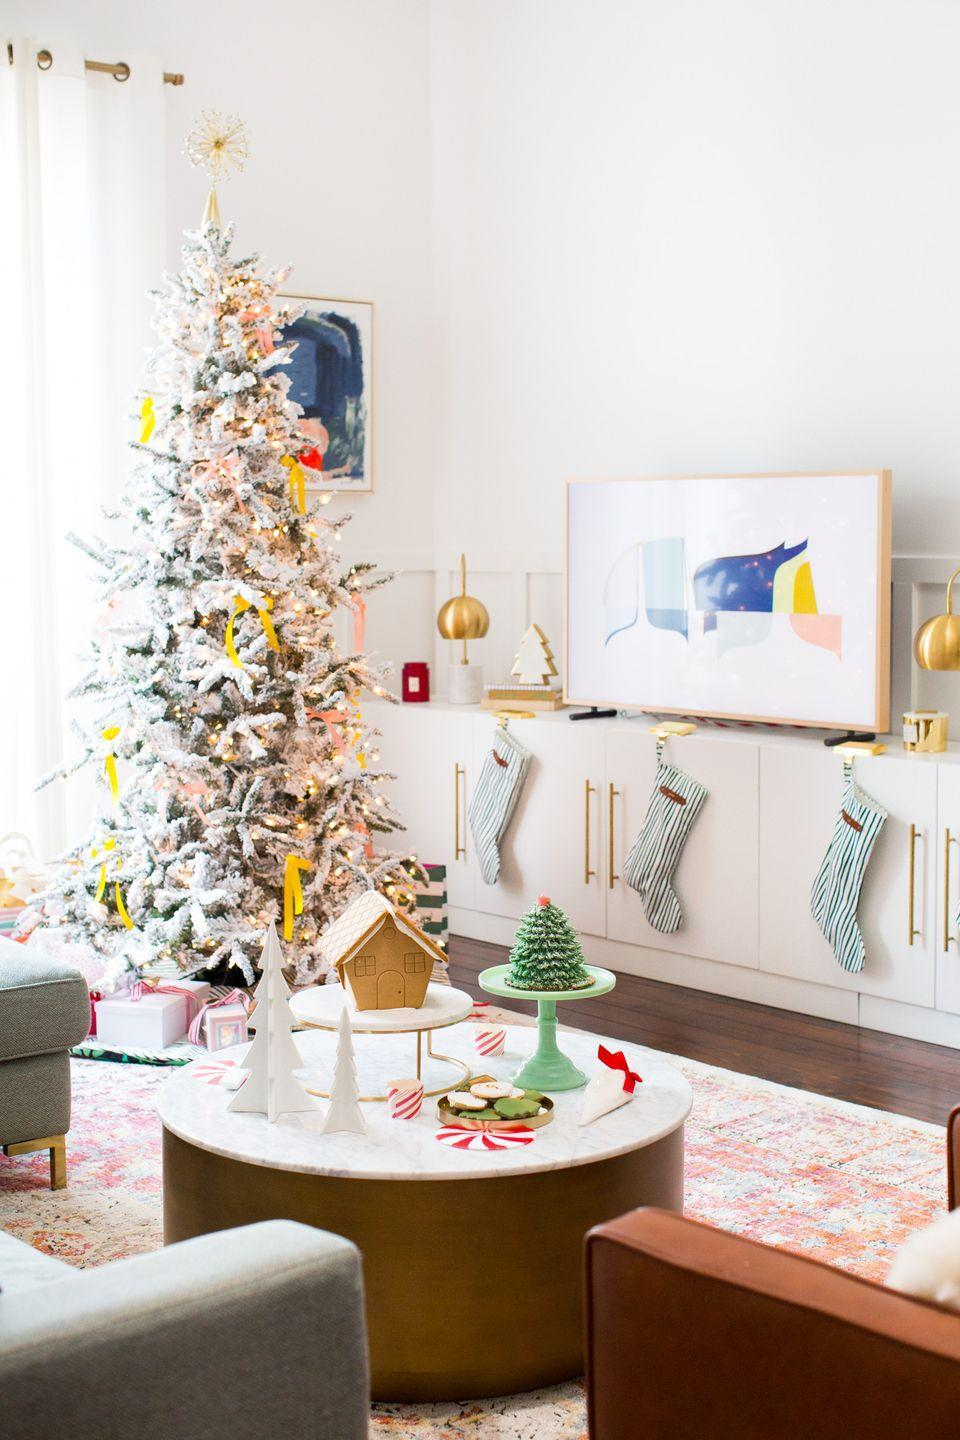 "<p>Skip the tree full of ornaments and opt for a simple frosted white tree with a garland instead. You'll have your Christmas decorating done in seconds with this one!</p><p>See more at <a href=""https://sugarandcloth.com/how-we-decorated-our-home-for-christmas/"" rel=""nofollow noopener"" target=""_blank"" data-ylk=""slk:Sugar & Cloth"" class=""link rapid-noclick-resp"">Sugar & Cloth</a>.</p><p><a class=""link rapid-noclick-resp"" href=""https://go.redirectingat.com?id=74968X1596630&url=https%3A%2F%2Fwww.wayfair.com%2Fholiday-decor%2Fpdp%2Fnational-tree-co-winchester-pine-7-white-artificial-christmas-tree-with-450-clear-lights-and-stand-ntc2177.html&sref=https%3A%2F%2Fwww.housebeautiful.com%2Fentertaining%2Fholidays-celebrations%2Ftips%2Fg505%2Fchristmas-tree-decoration-ideas-pictures-1208%2F"" rel=""nofollow noopener"" target=""_blank"" data-ylk=""slk:SHOP TREES"">SHOP TREES</a><em><strong> White Tree, $180</strong></em></p>"